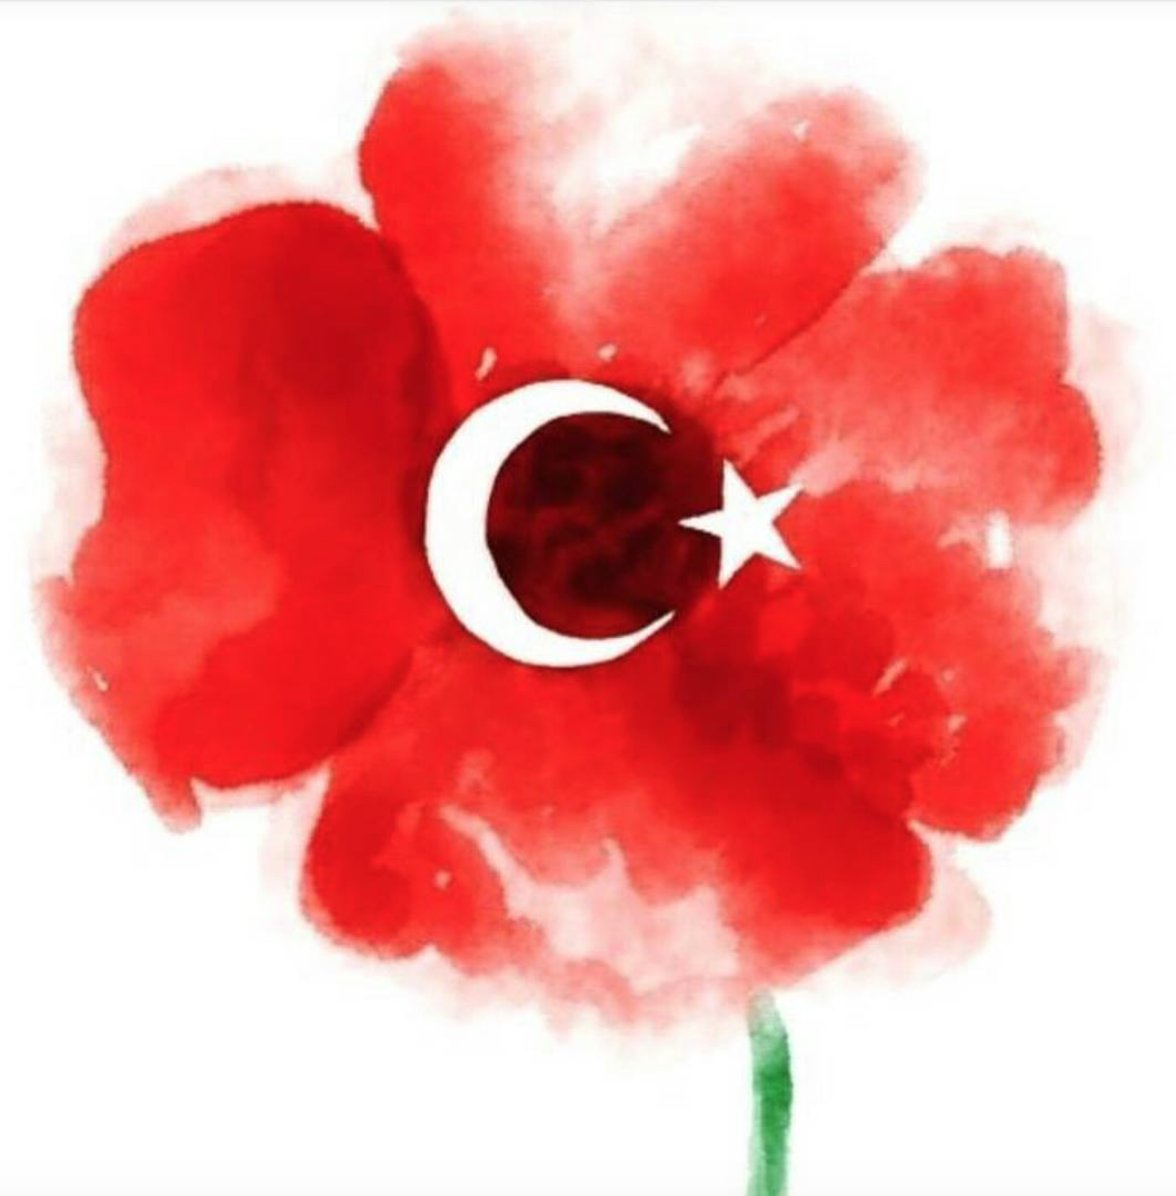 Prayers for one of my most loved cities. Unreal how much senseless violence there is in this world #turkey